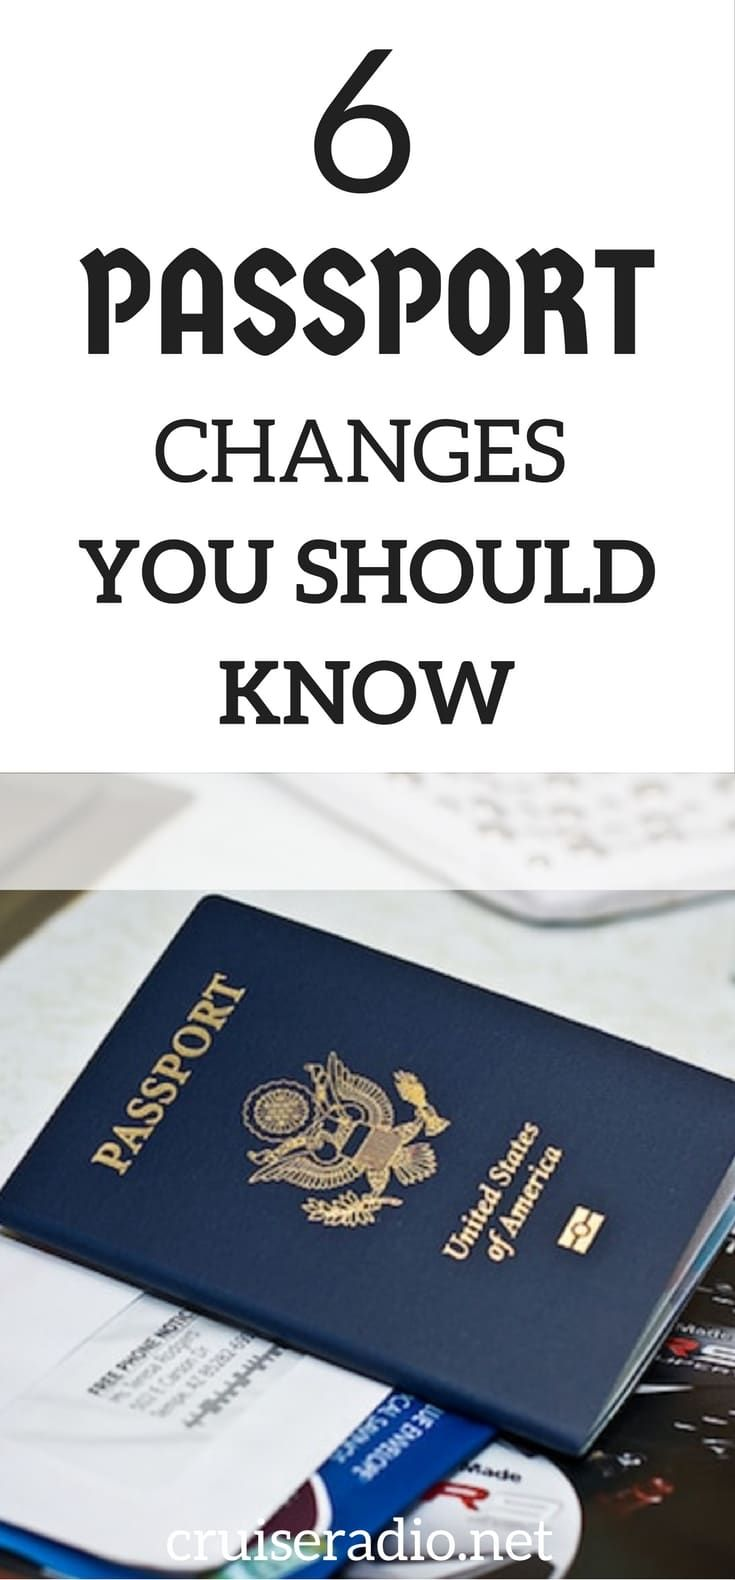 With travel on the upswing, many people are looking to apply for or renew their passport. We have six changes in the process you need to be aware of.